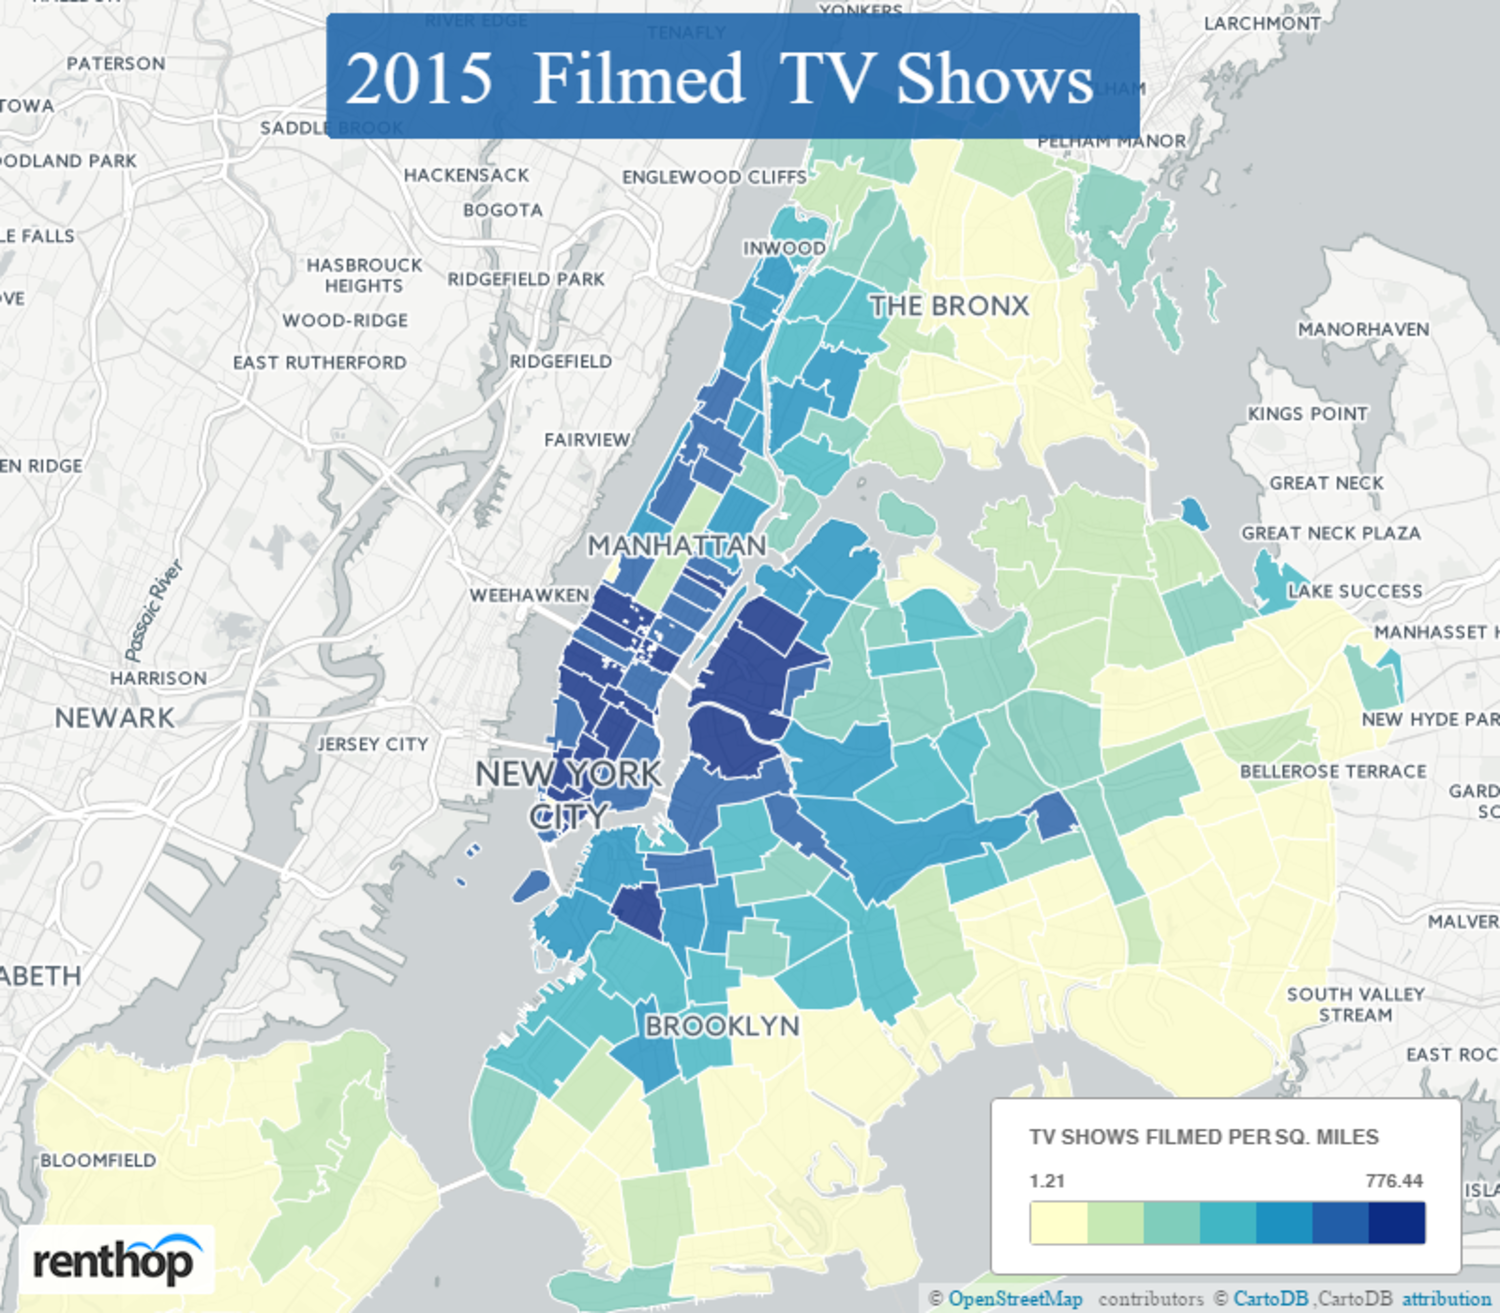 Maps Show What New York City Neighborhoods Television and